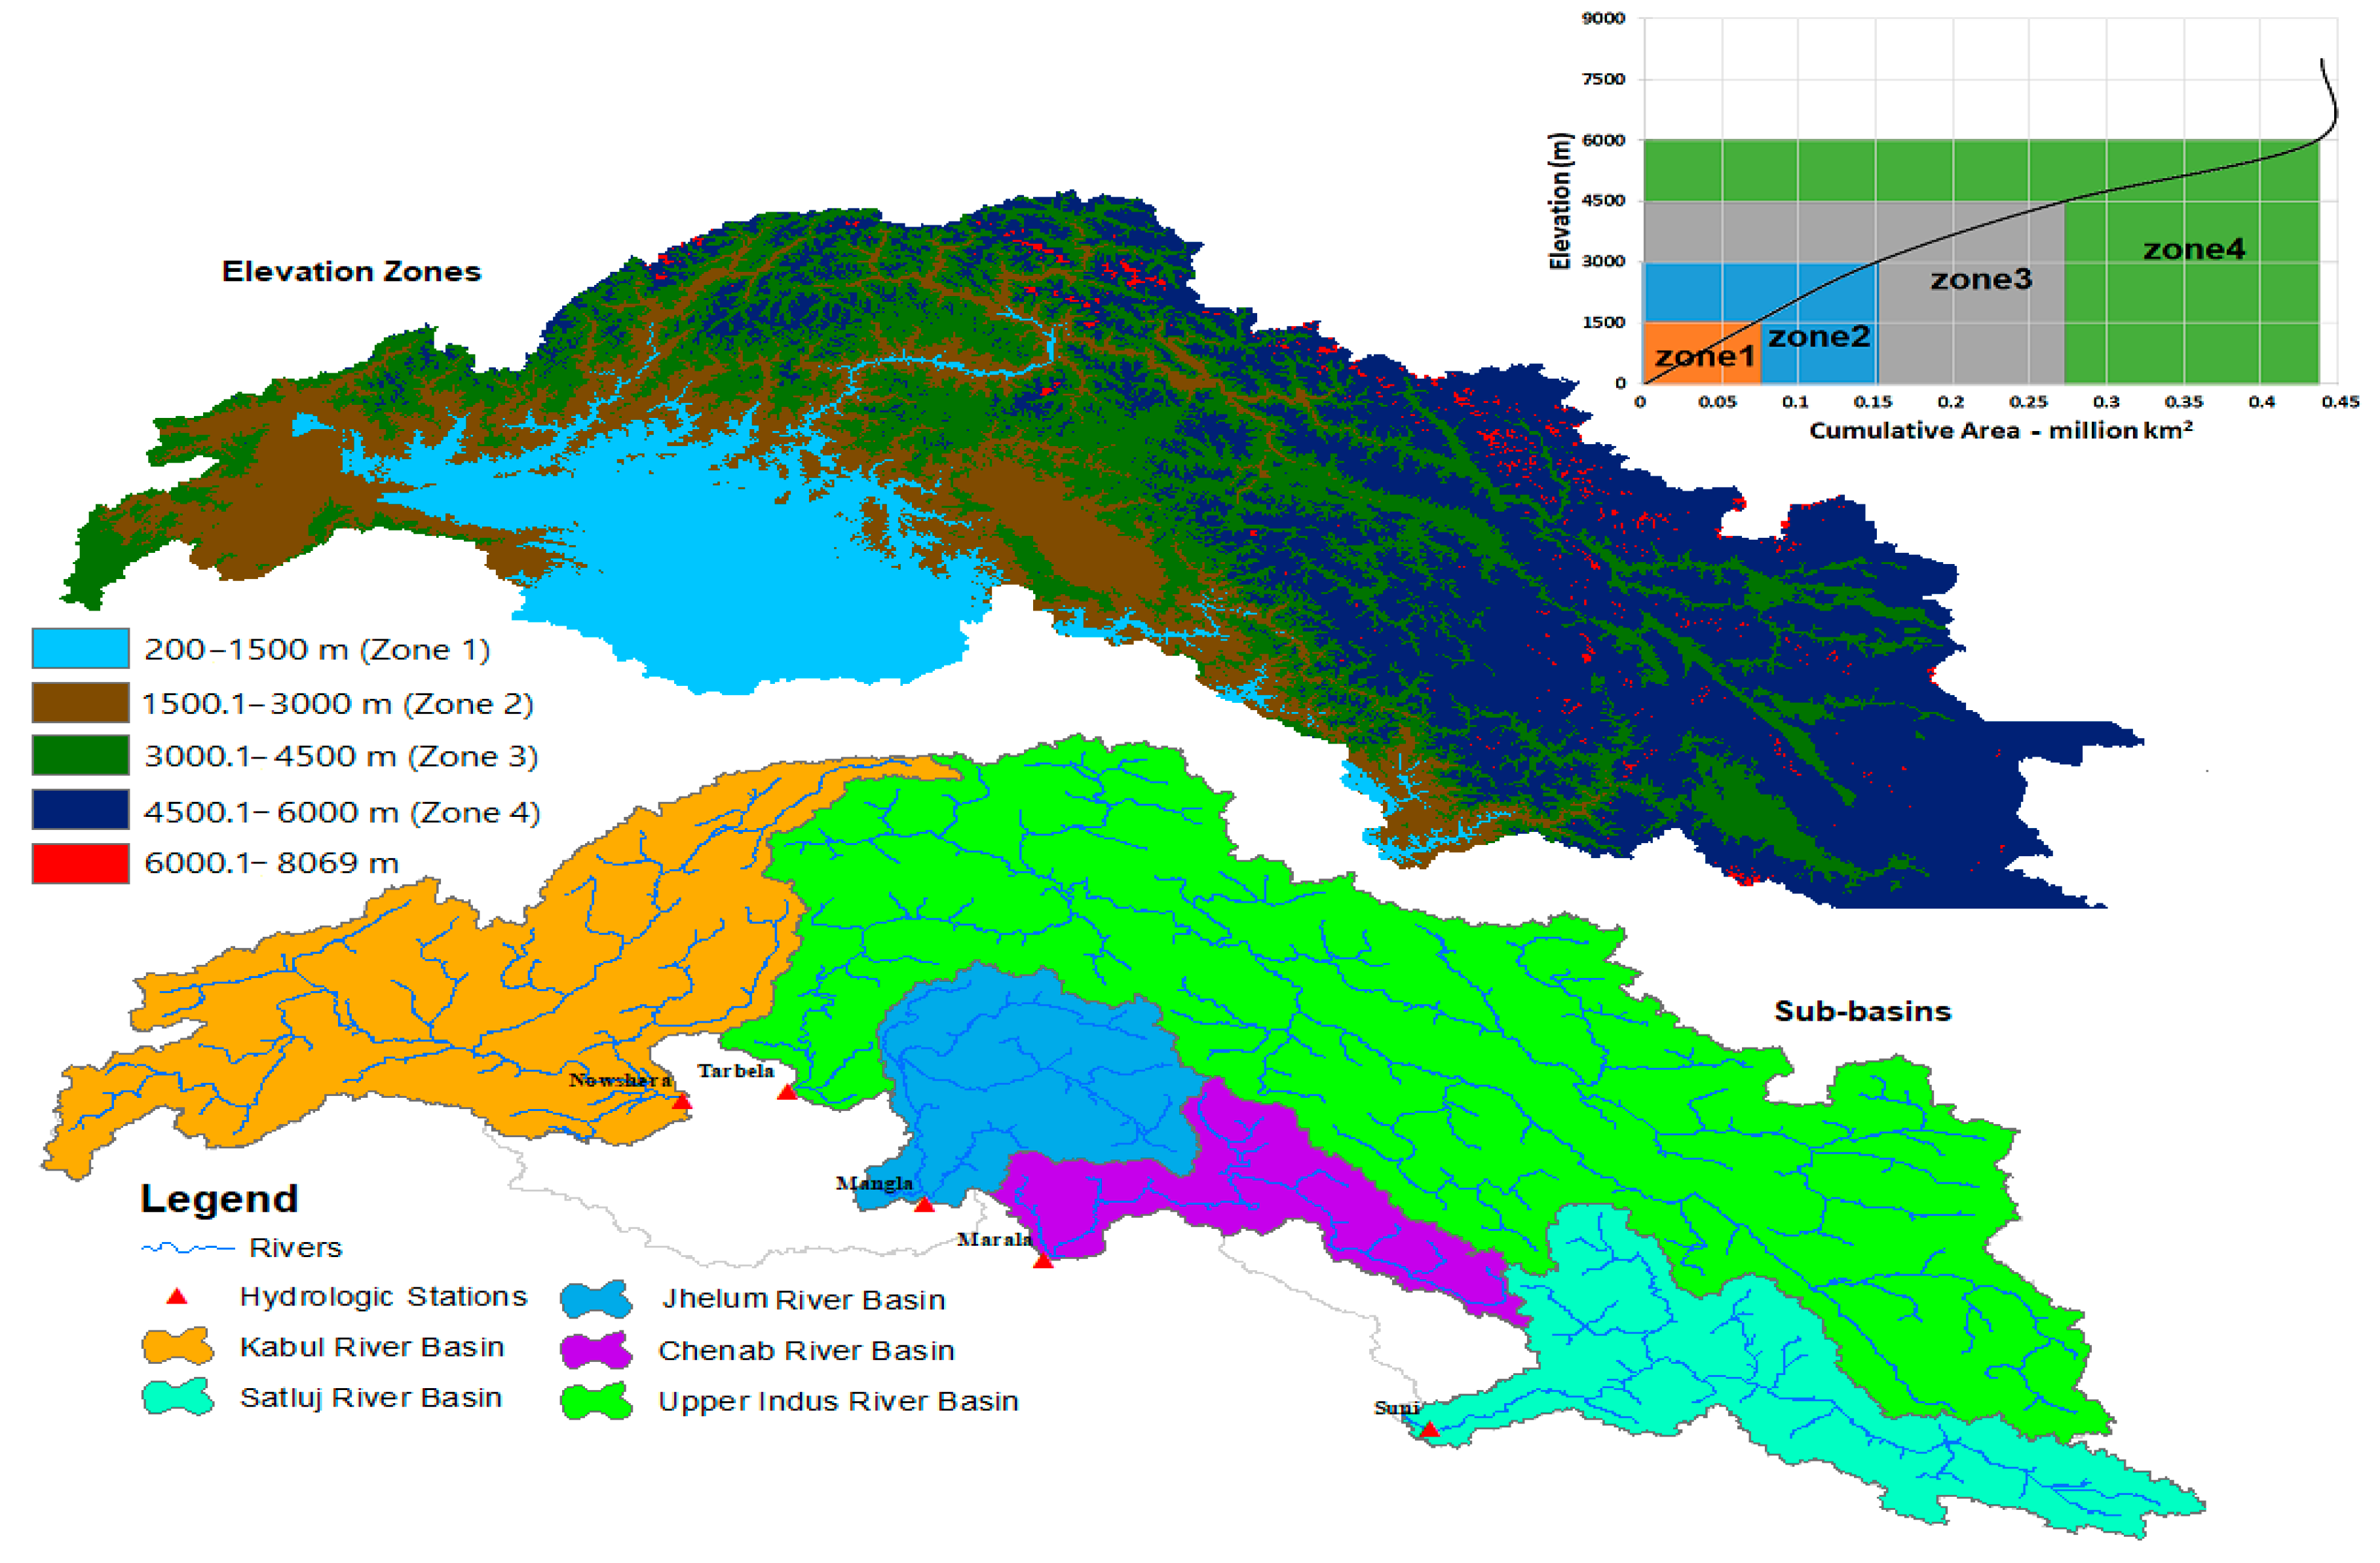 Water | Free Full-Text | Precipitation Variations under a Changing on krishna river on map, aral sea on map, irrawaddy river on map, japan on map, persian gulf on map, deccan plateau on map, jordan river on map, himalayan mountains on map, bangladesh on map, kashmir on map, gulf of khambhat on map, gobi desert on map, ganges river on map, indian ocean on map, himalayas on map, yellow river on map, great indian desert on map, yangzte river on map, eastern ghats on map, lena river on map,